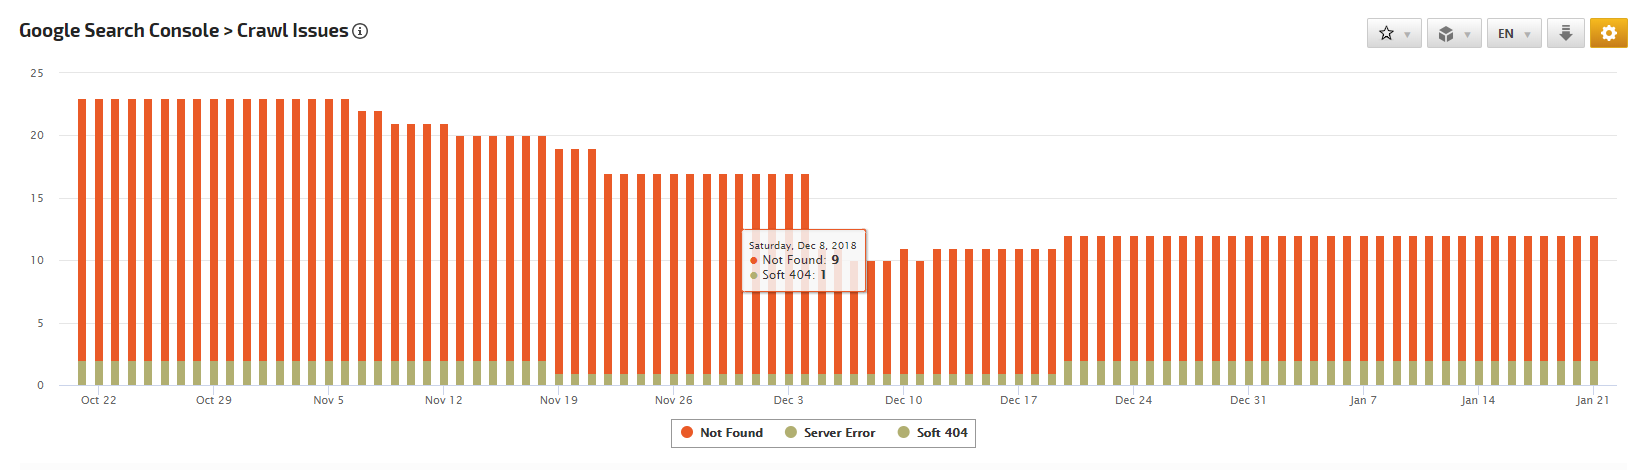 Search Console (Webmaster Tools) Crawl Issues Chart